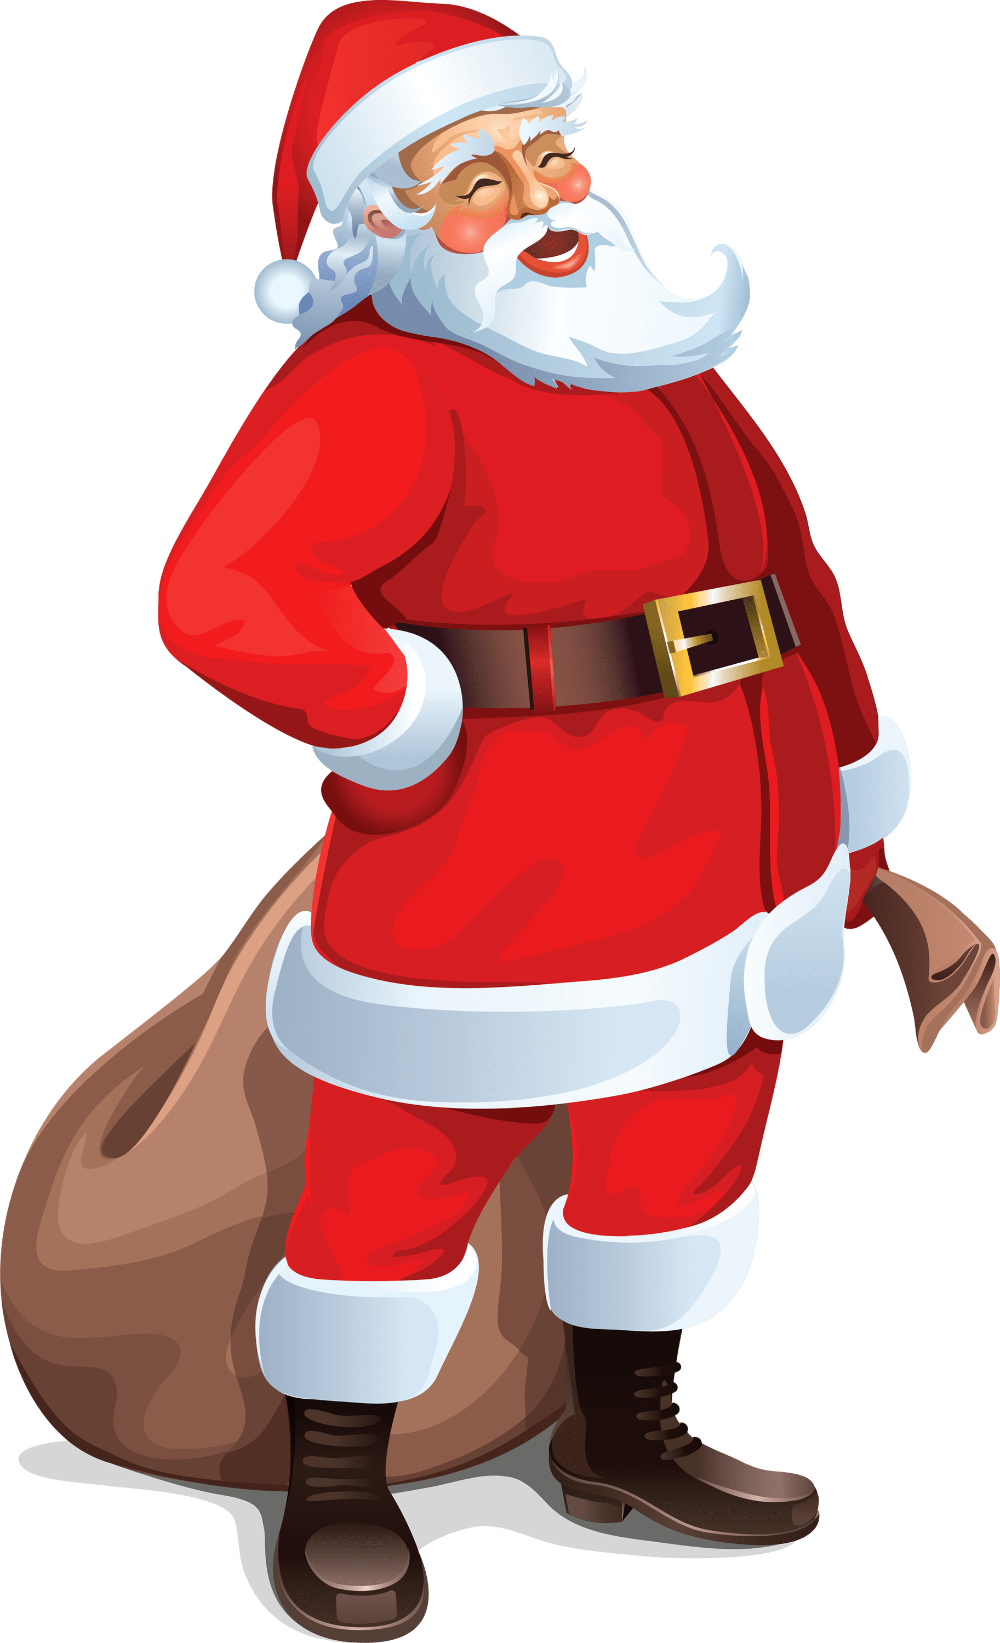 Celebrate Christmas Santa Claus Illustration Santa Clipart Western Festival Happy Png And Vector With Transparent Background For Free Download Santa Art How To Draw Santa Christmas Vectors